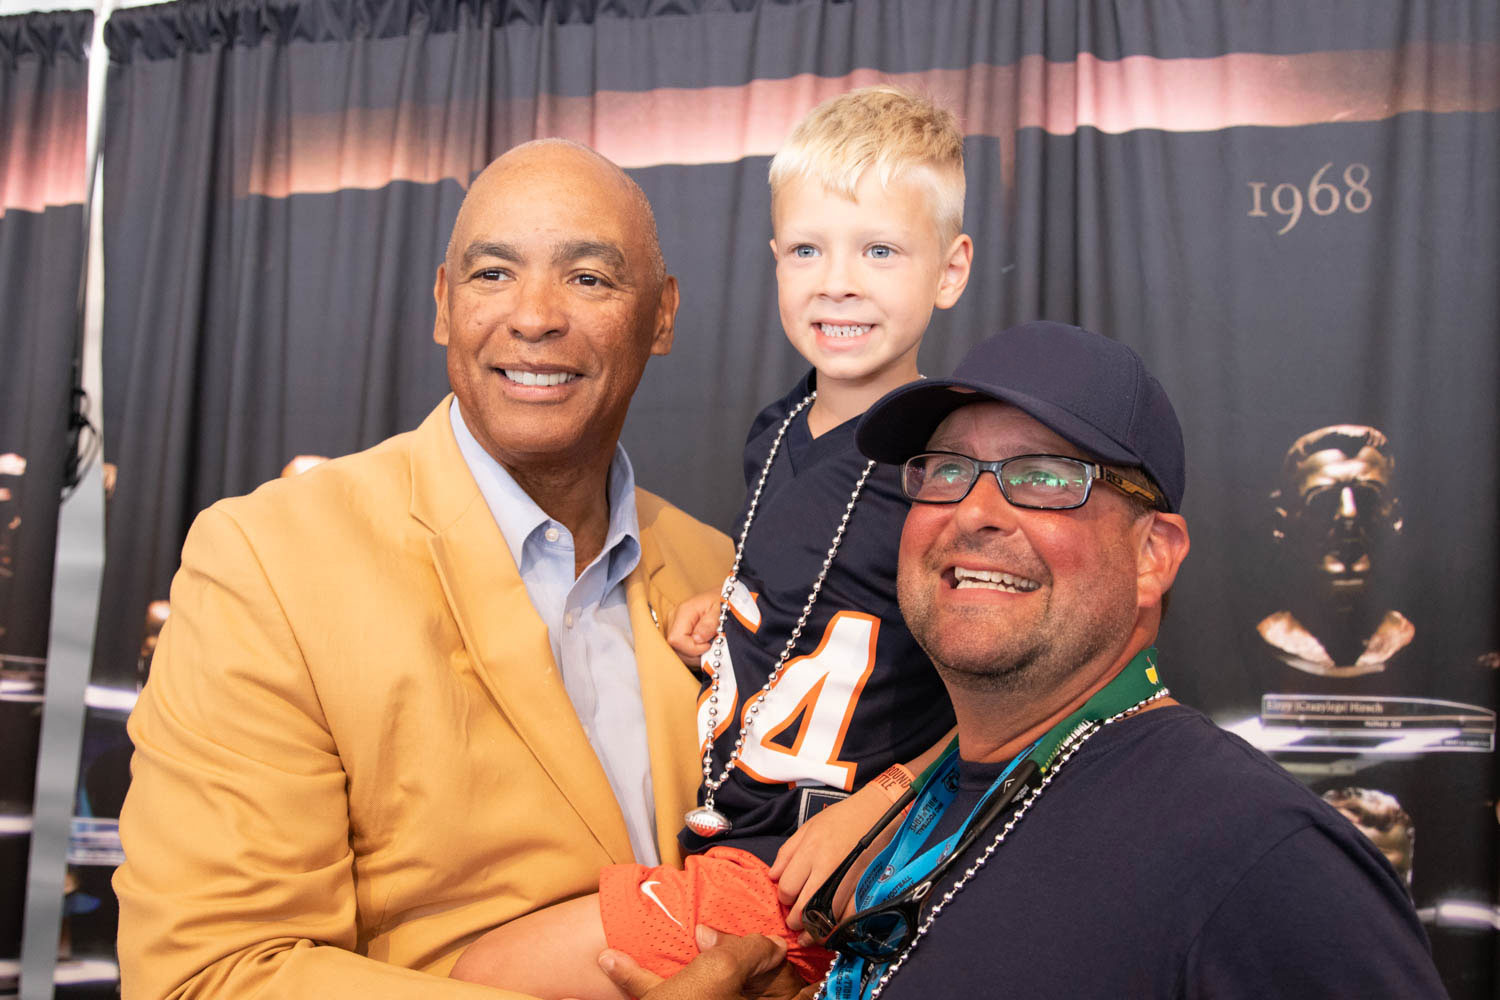 About The Pro Football Hall Of Fame Enshrinement Week